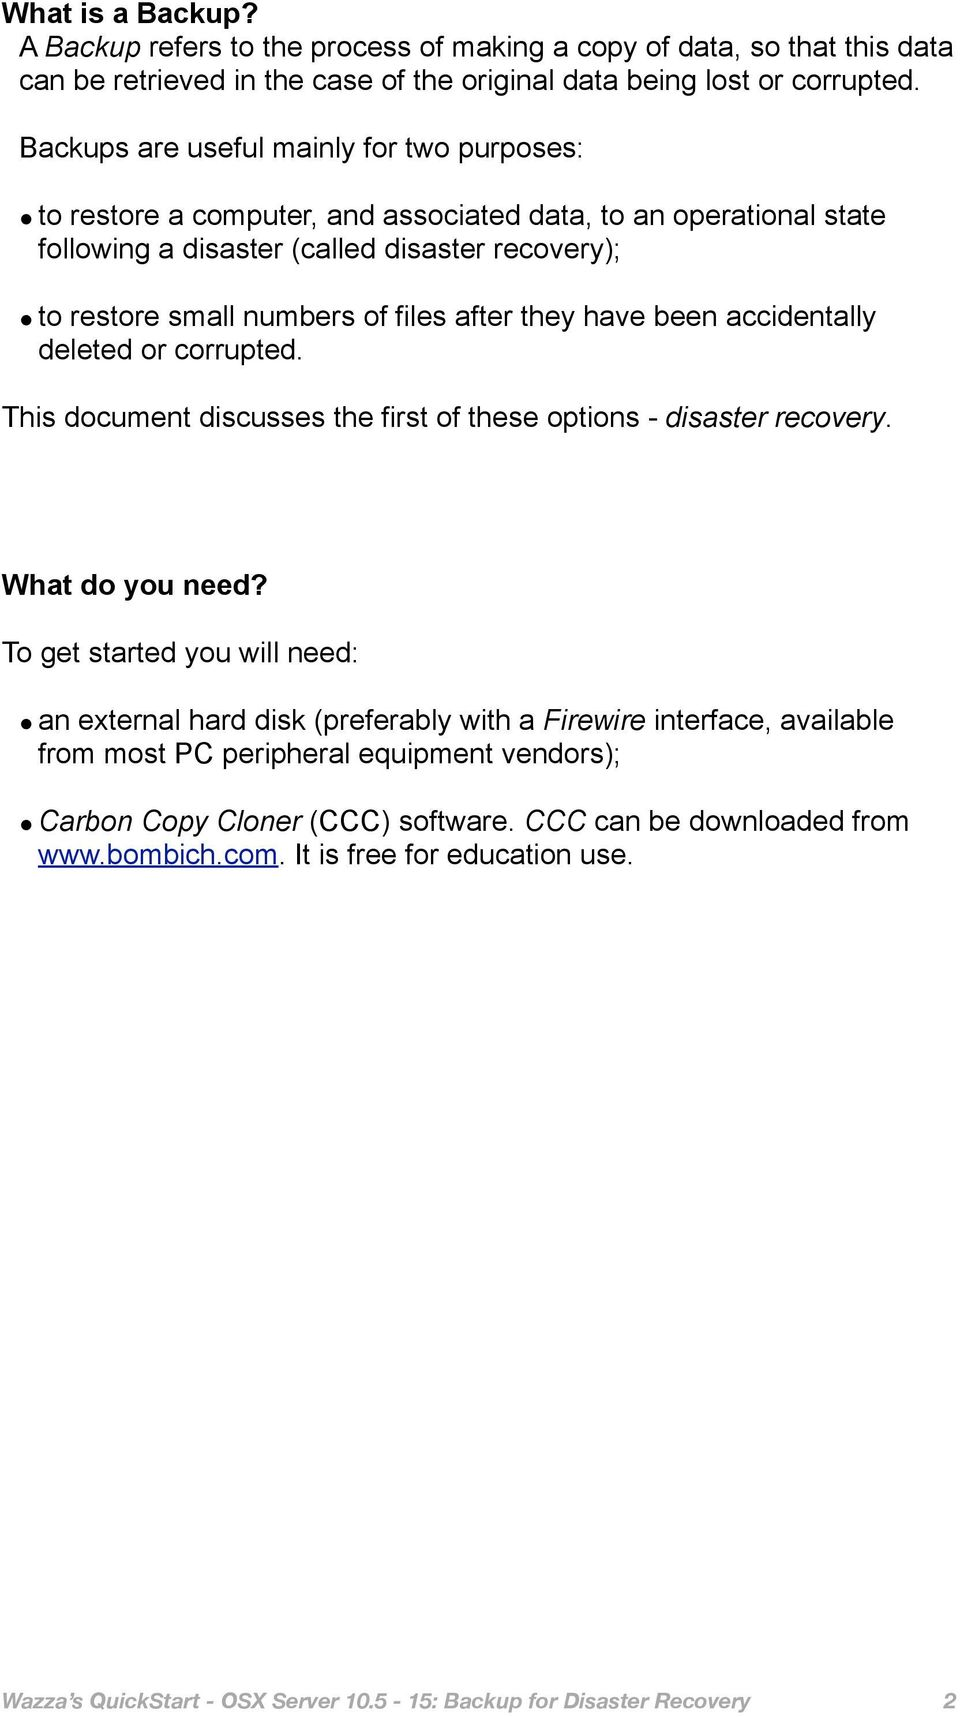 after they have been accidentally deleted or corrupted. This document discusses the first of these options - disaster recovery. What do you need?